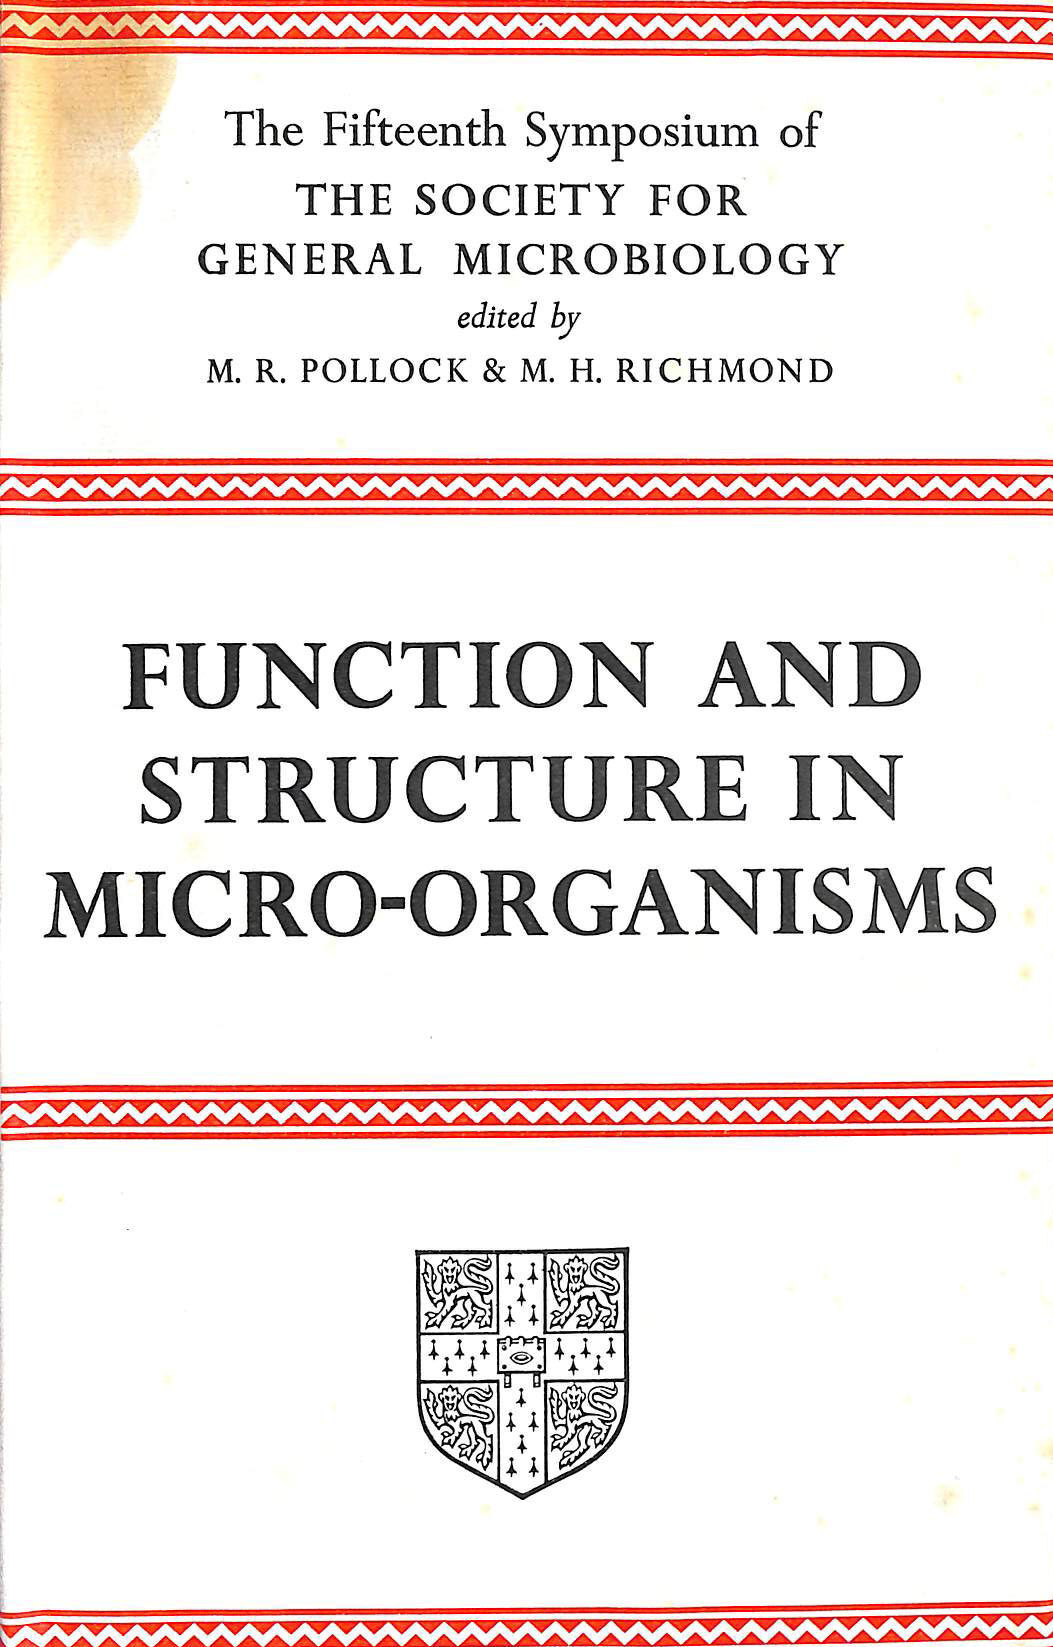 Image for Function and Structure in Micro-Organisms: Fifteenth Symposium of the Society for General Microbiology held at the Middlesex Hospital, London April 1965